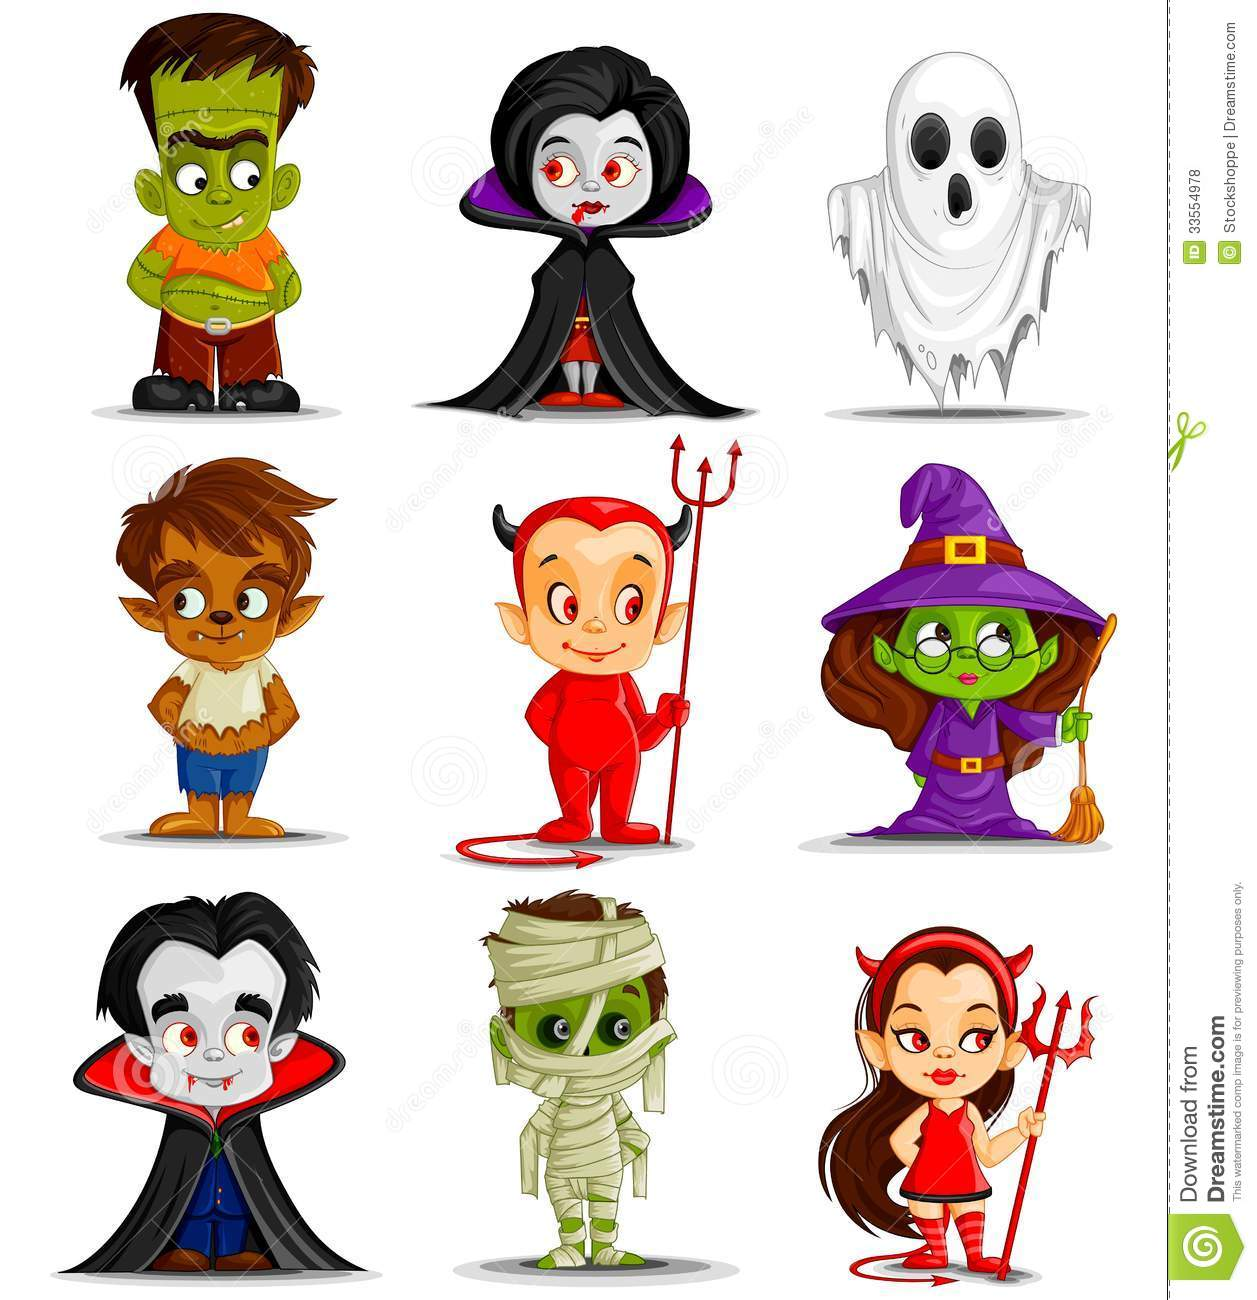 Halloween Monster Royalty Free Stock Photos - Image: 33554978